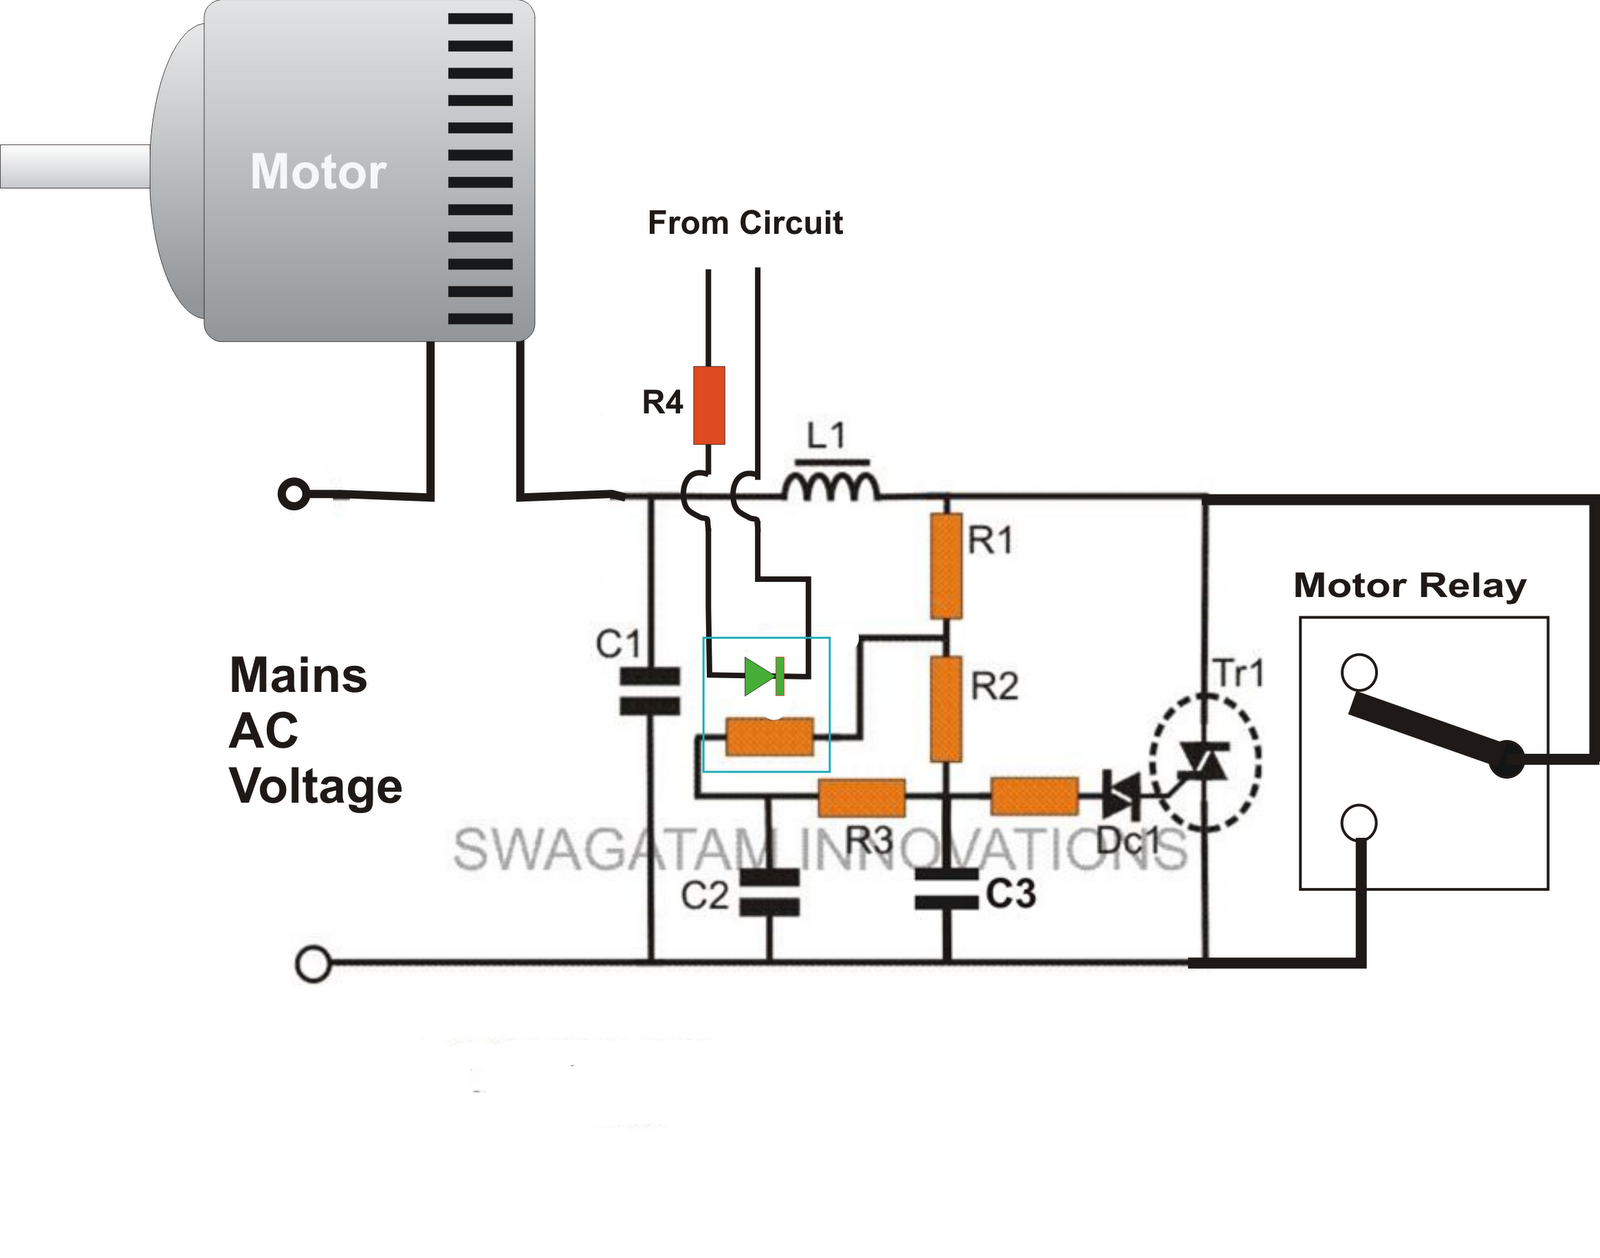 Linear Coupler additionally Gfci Outlet Wiring Diagram 29 as well 3 Wire Start Stop Wiring Diagram moreover John Deere 3032e Wiring Diagram Deere Download Free besides Addressable Fire Alarm Control Panel Wiring Diagram. on single phase motor schematic